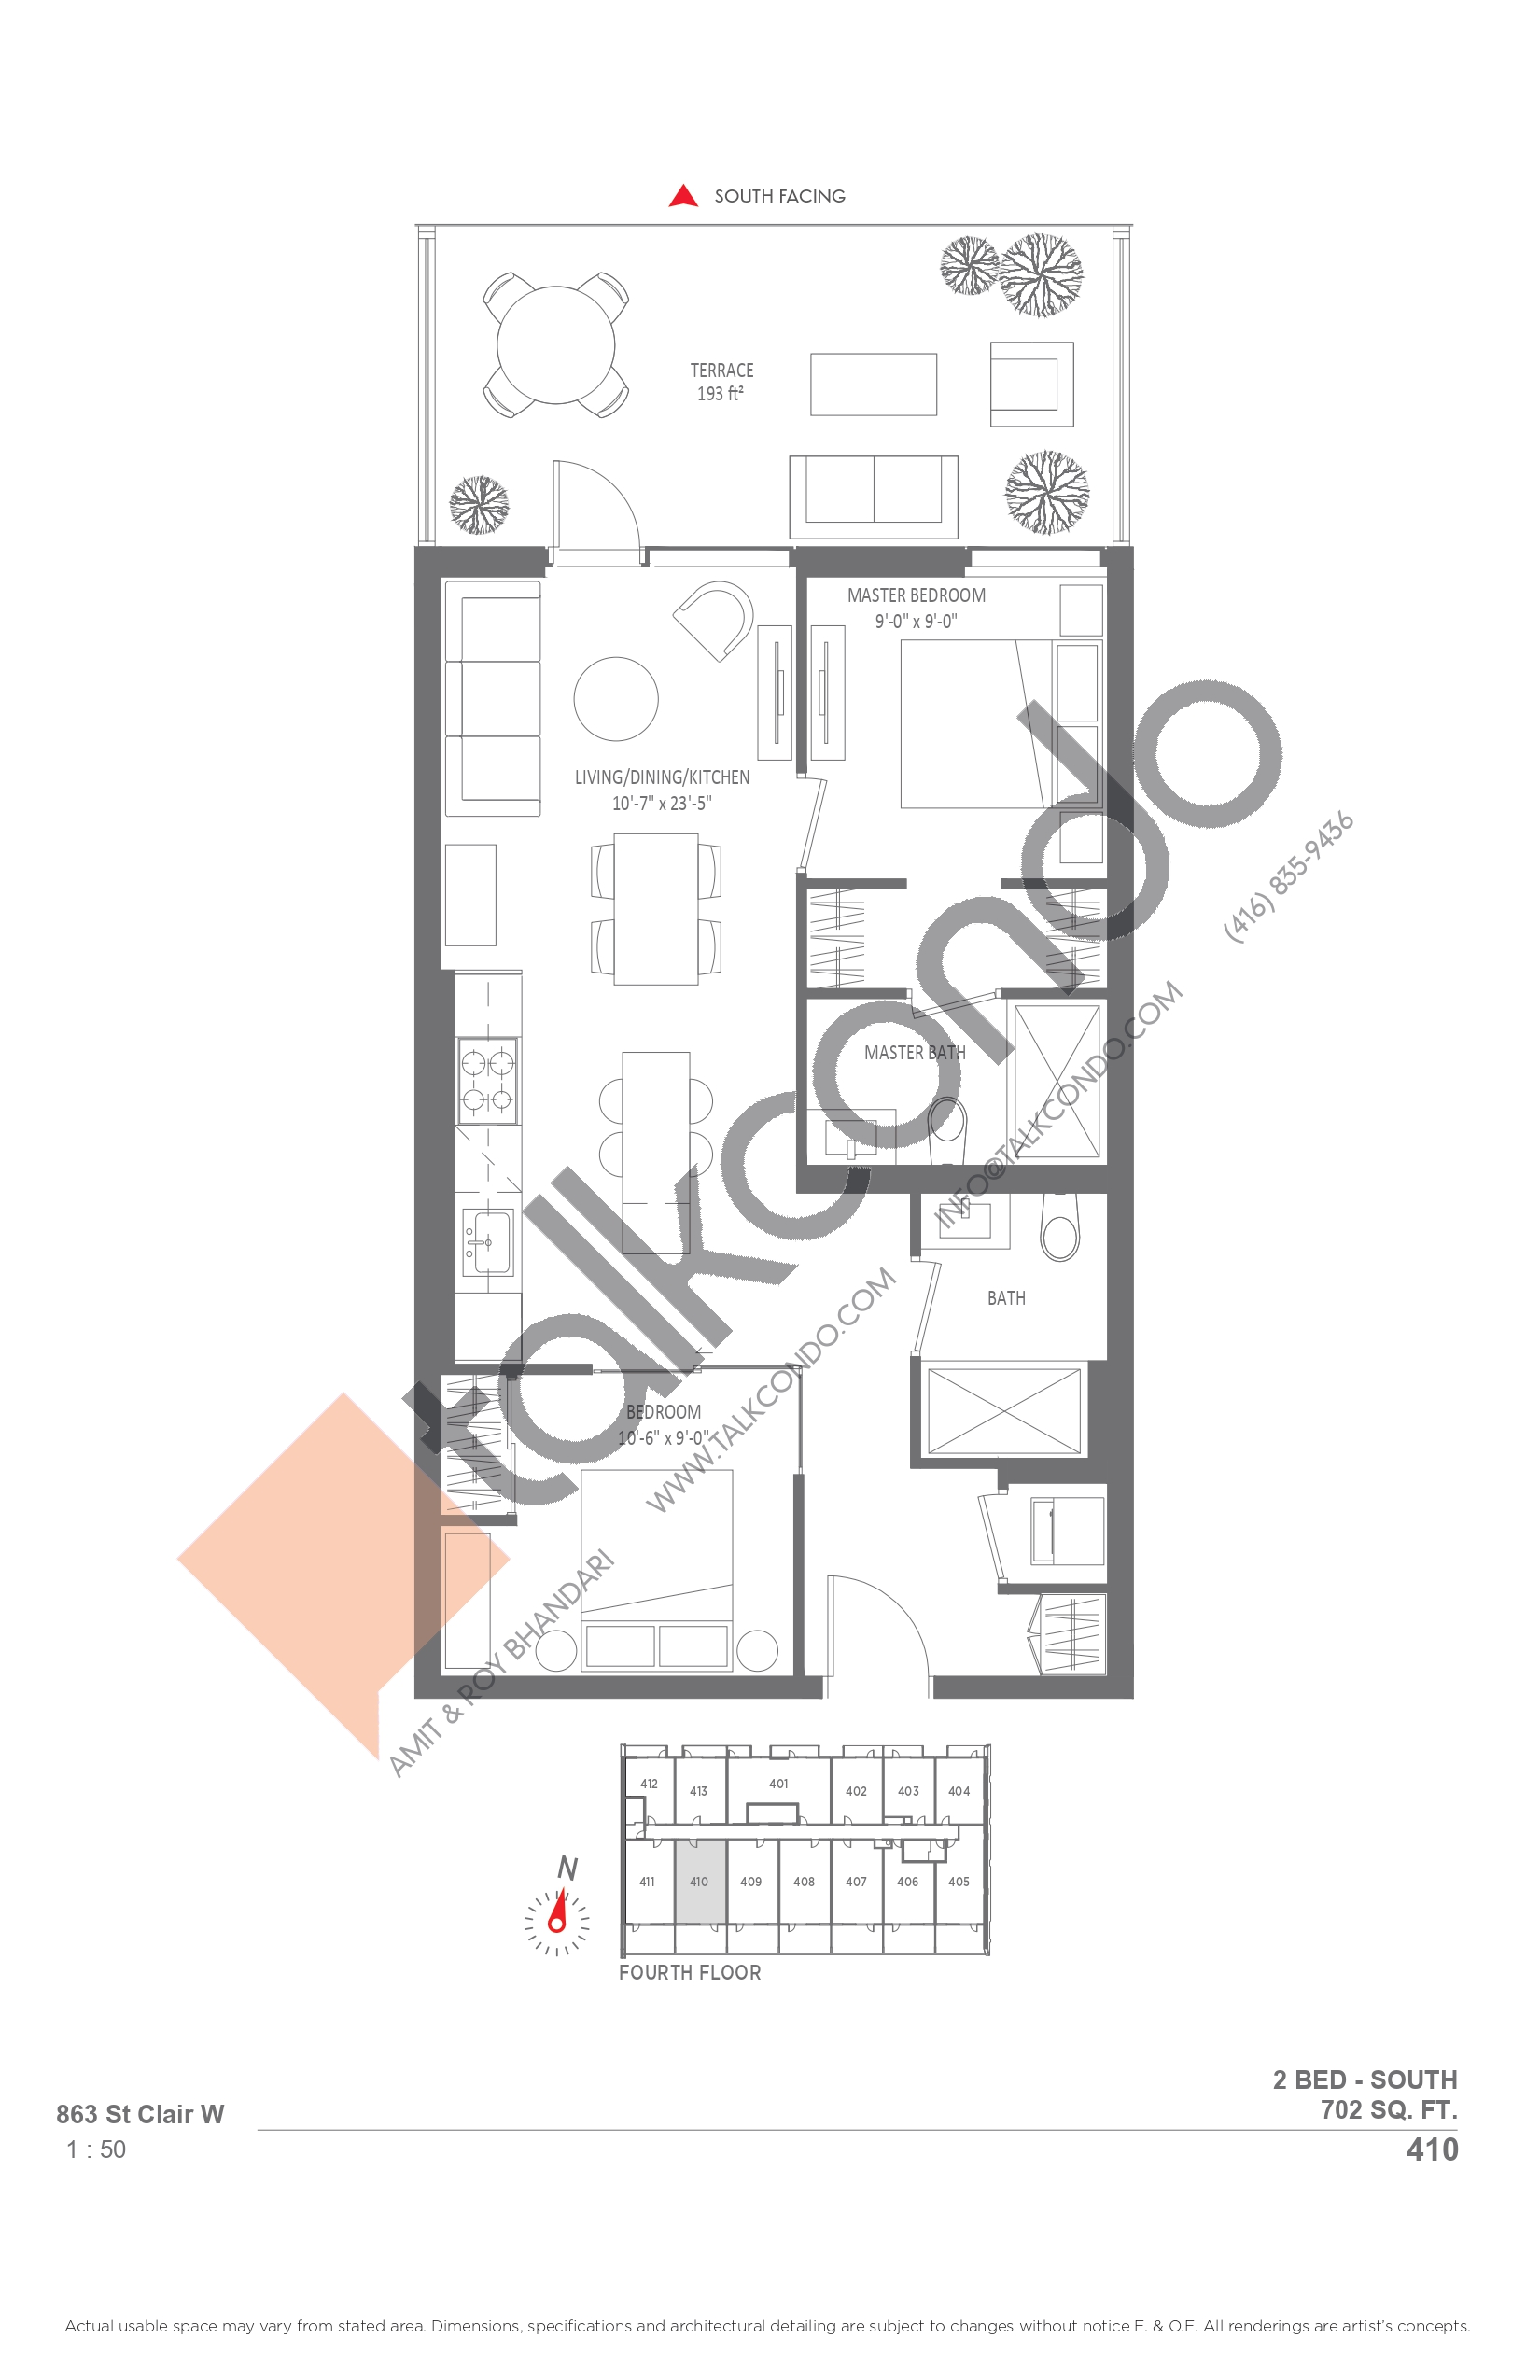 410 Floor Plan at Monza Condos - 702 sq.ft